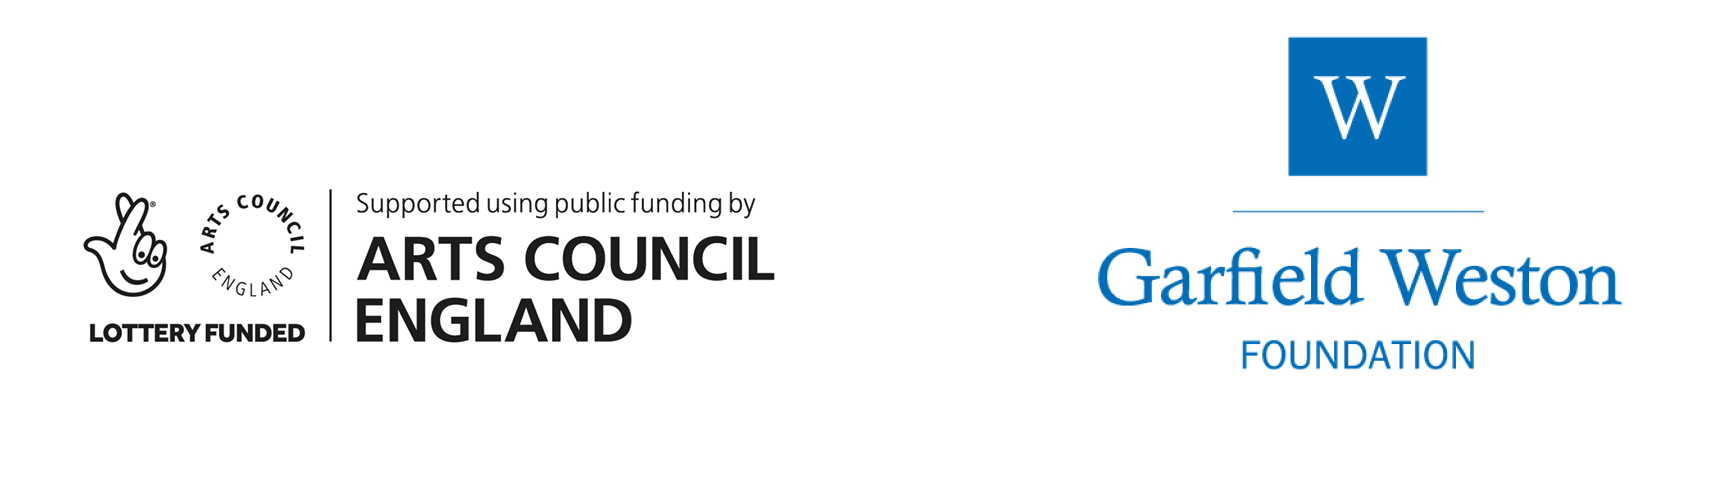 logos of arts council england and garfield weston foundation